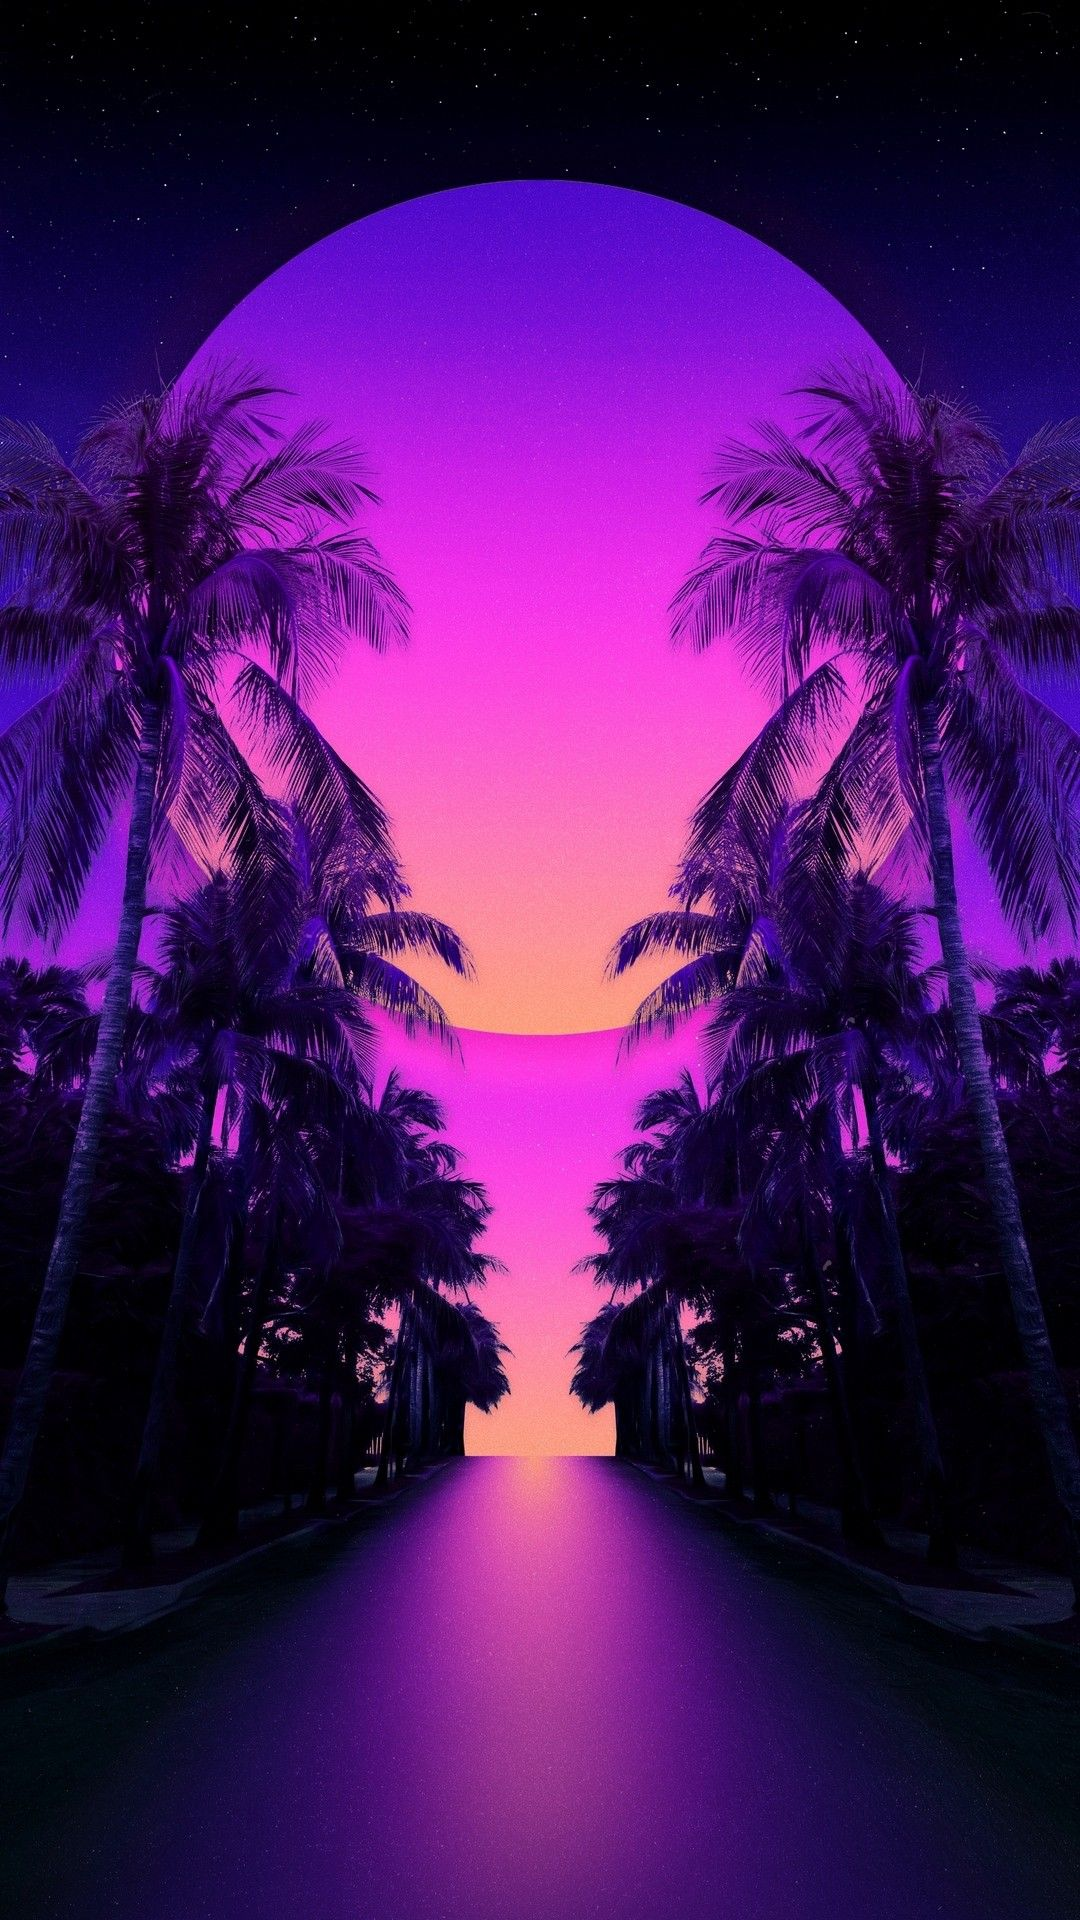 Synthwave Apple wallpaper iphone, Iphone homescreen